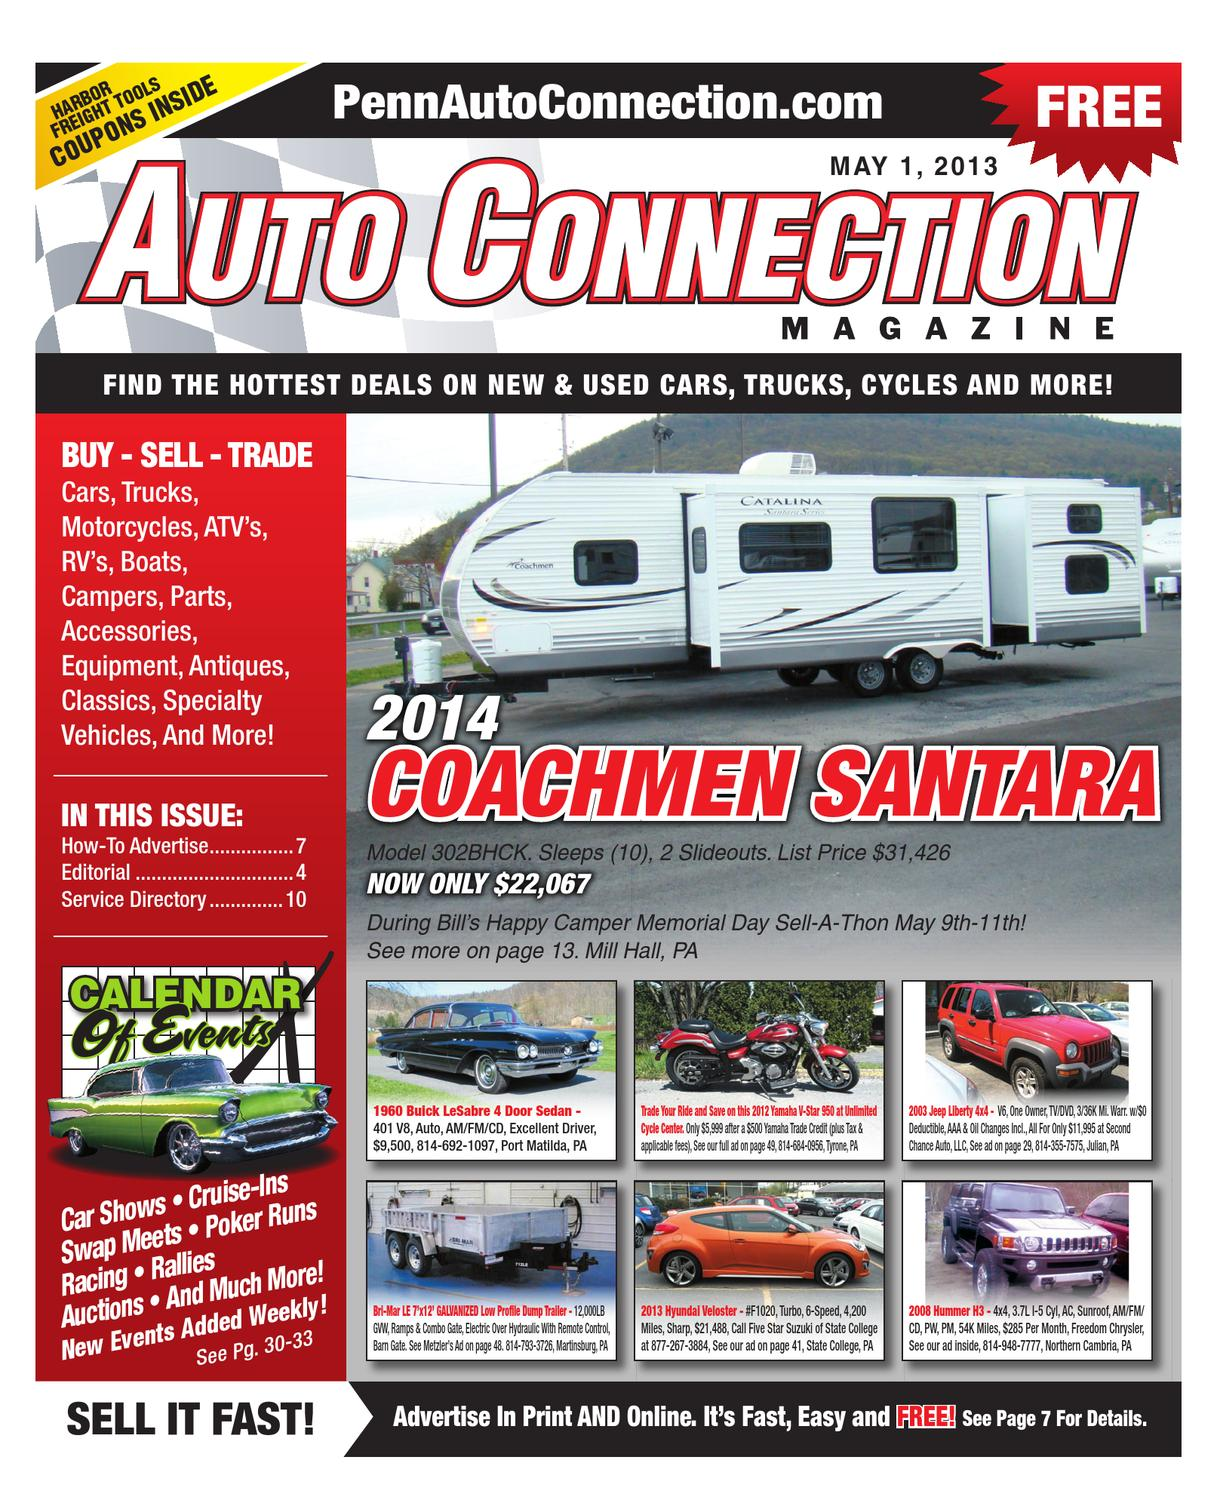 Garage Gator Motorized Electric Hoist Ggr 125 05 01 13 Auto Connection Magazine By Auto Connection Magazine Issuu